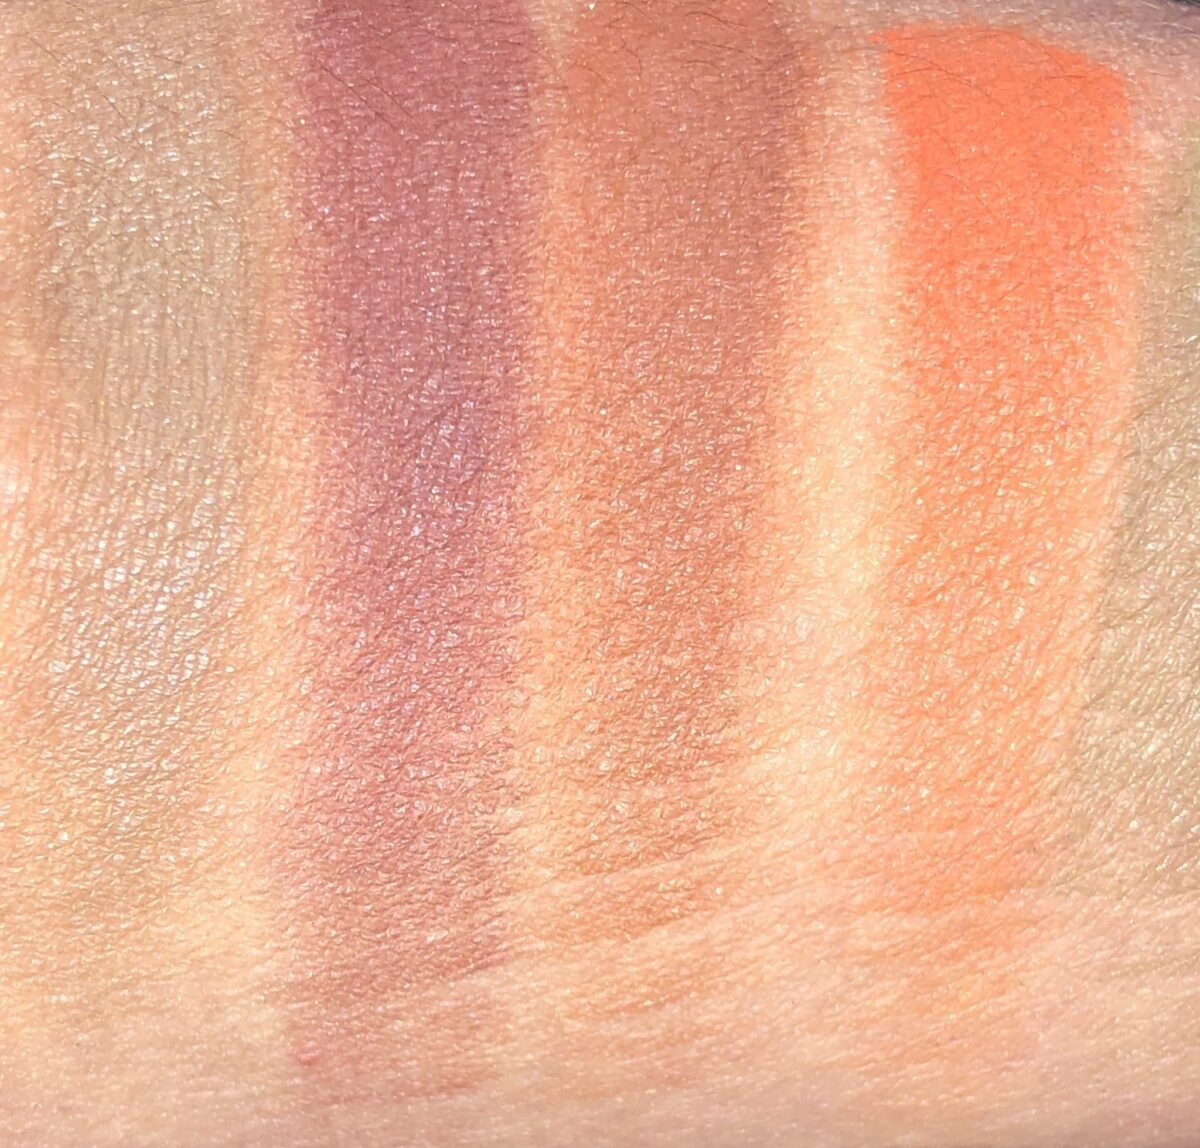 ROW 1 SWATCHES LEFT TO RIGHT : TOFFEE, SIENNA, SEPIA, AND PERSIMMON